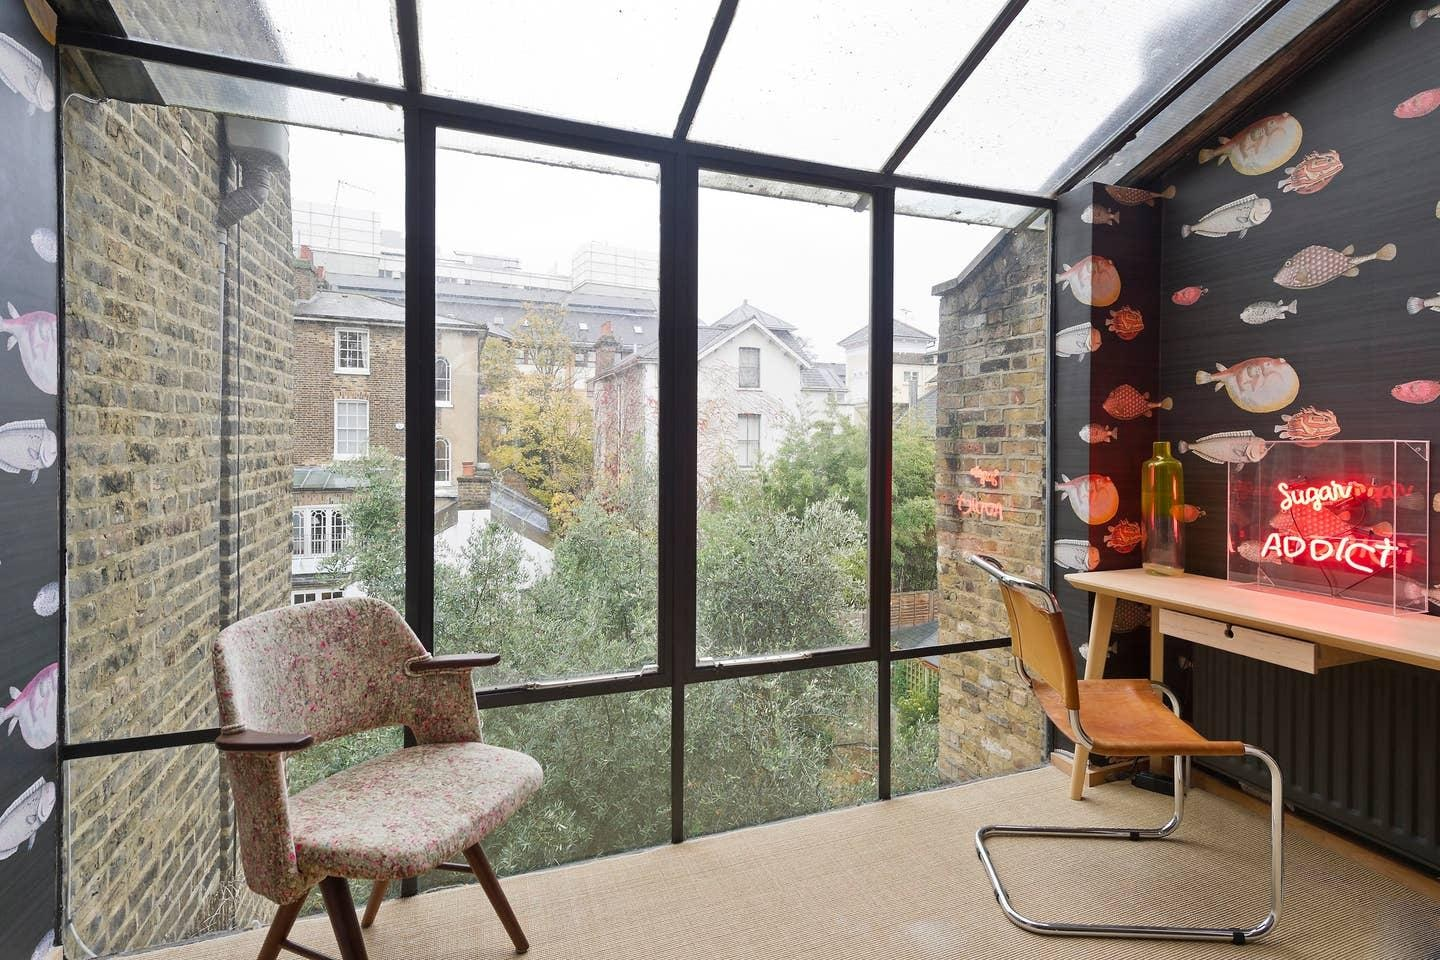 Property Image 2 - Modern Chelsea Apartment with Italian Influences